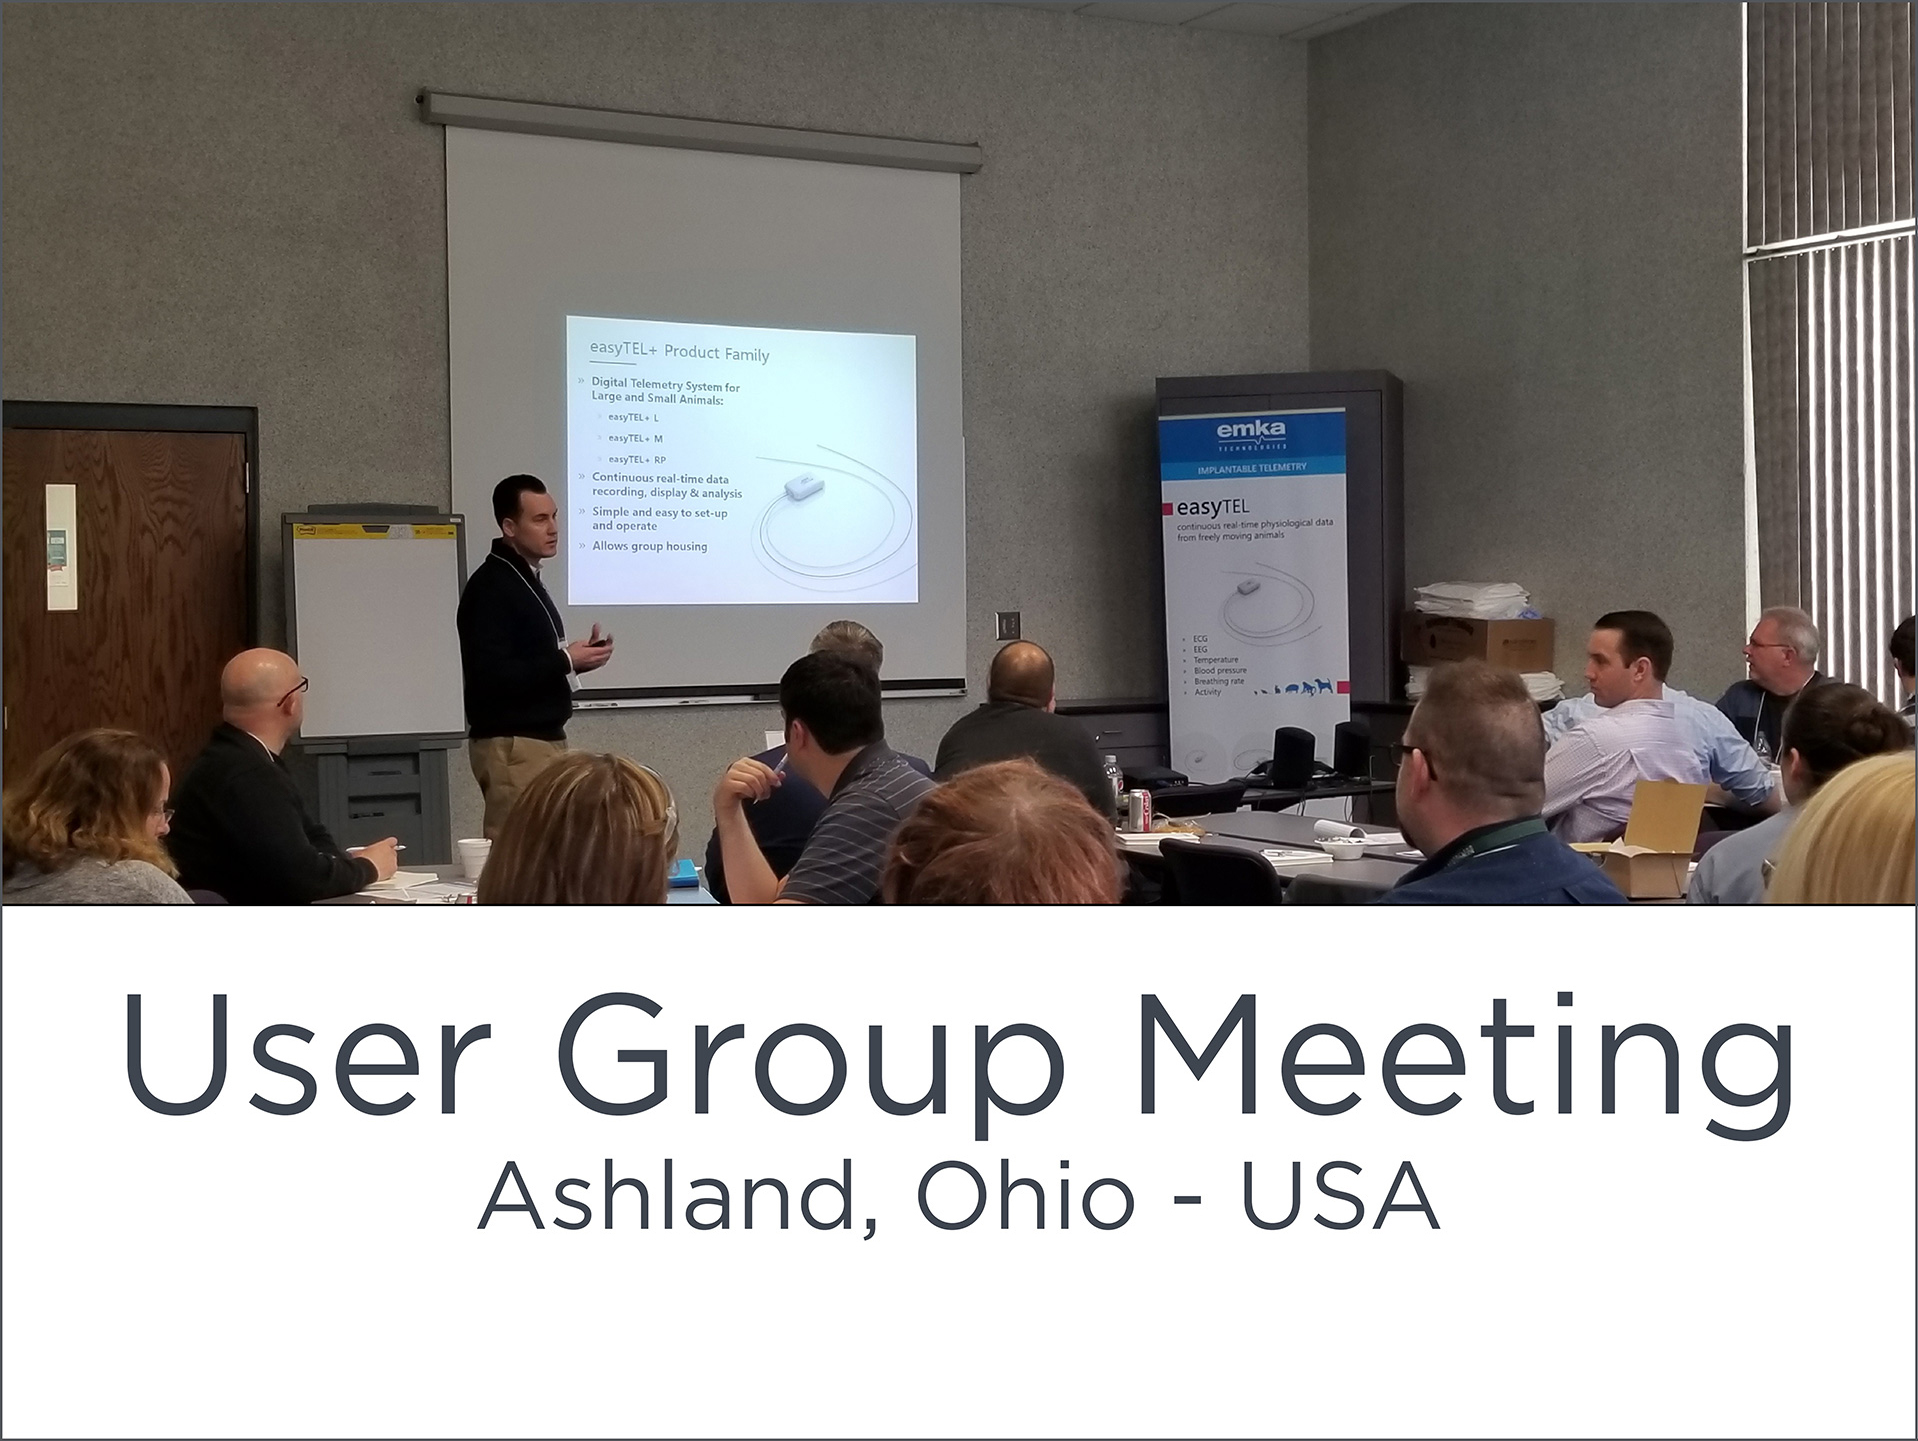 User Group Meeting – USA emka user group meeting Ashland 1